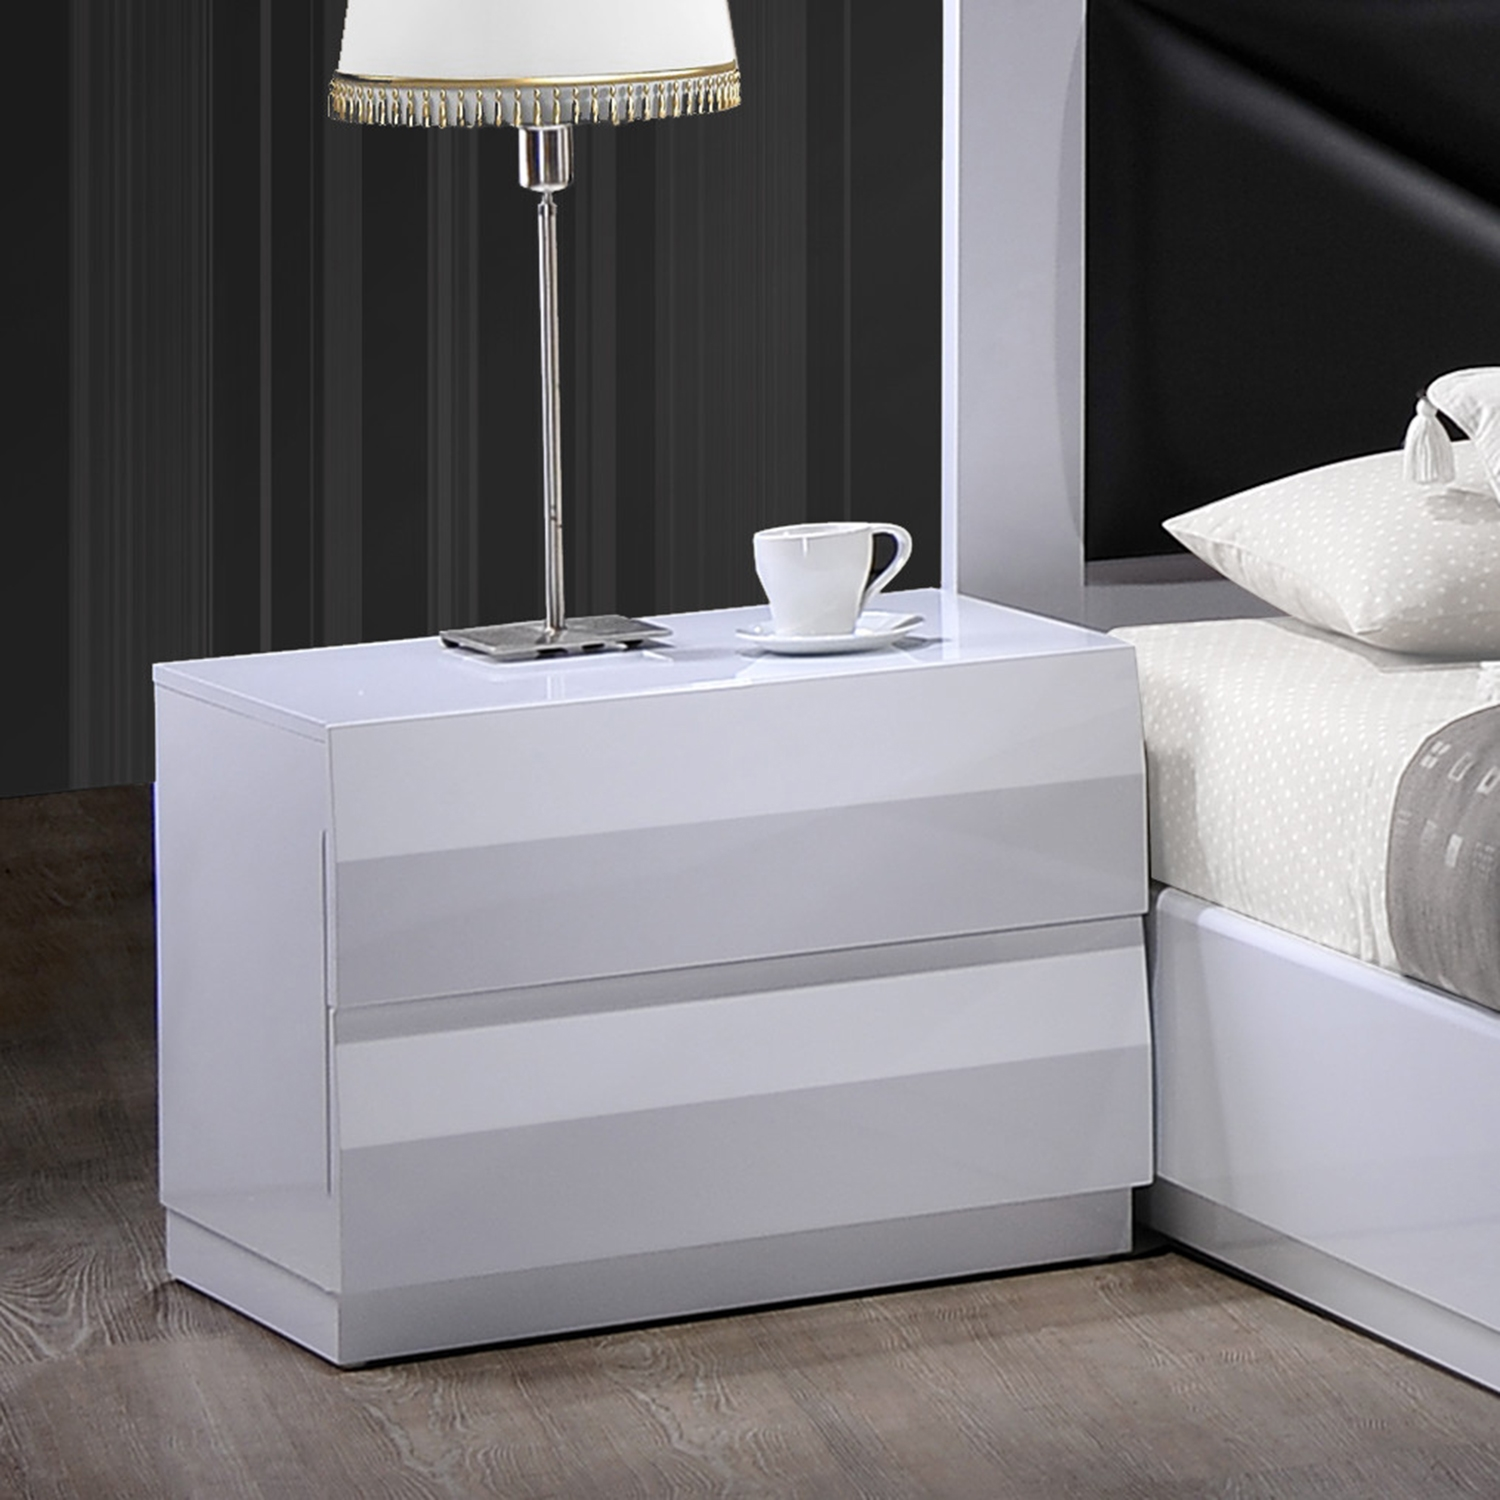 Bailey Nightstand, High Gloss White - GLO-BAILEY-900A-NS-M